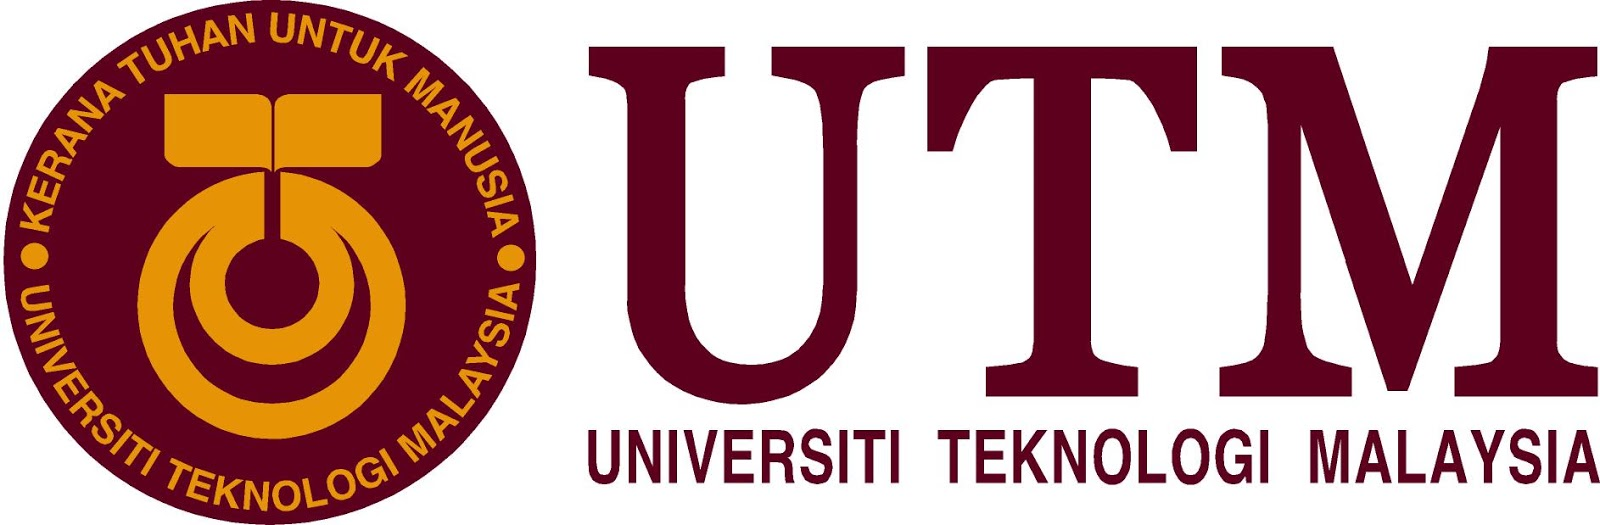 top universities utm   turkey to malaysia crest vector download crest vector logo